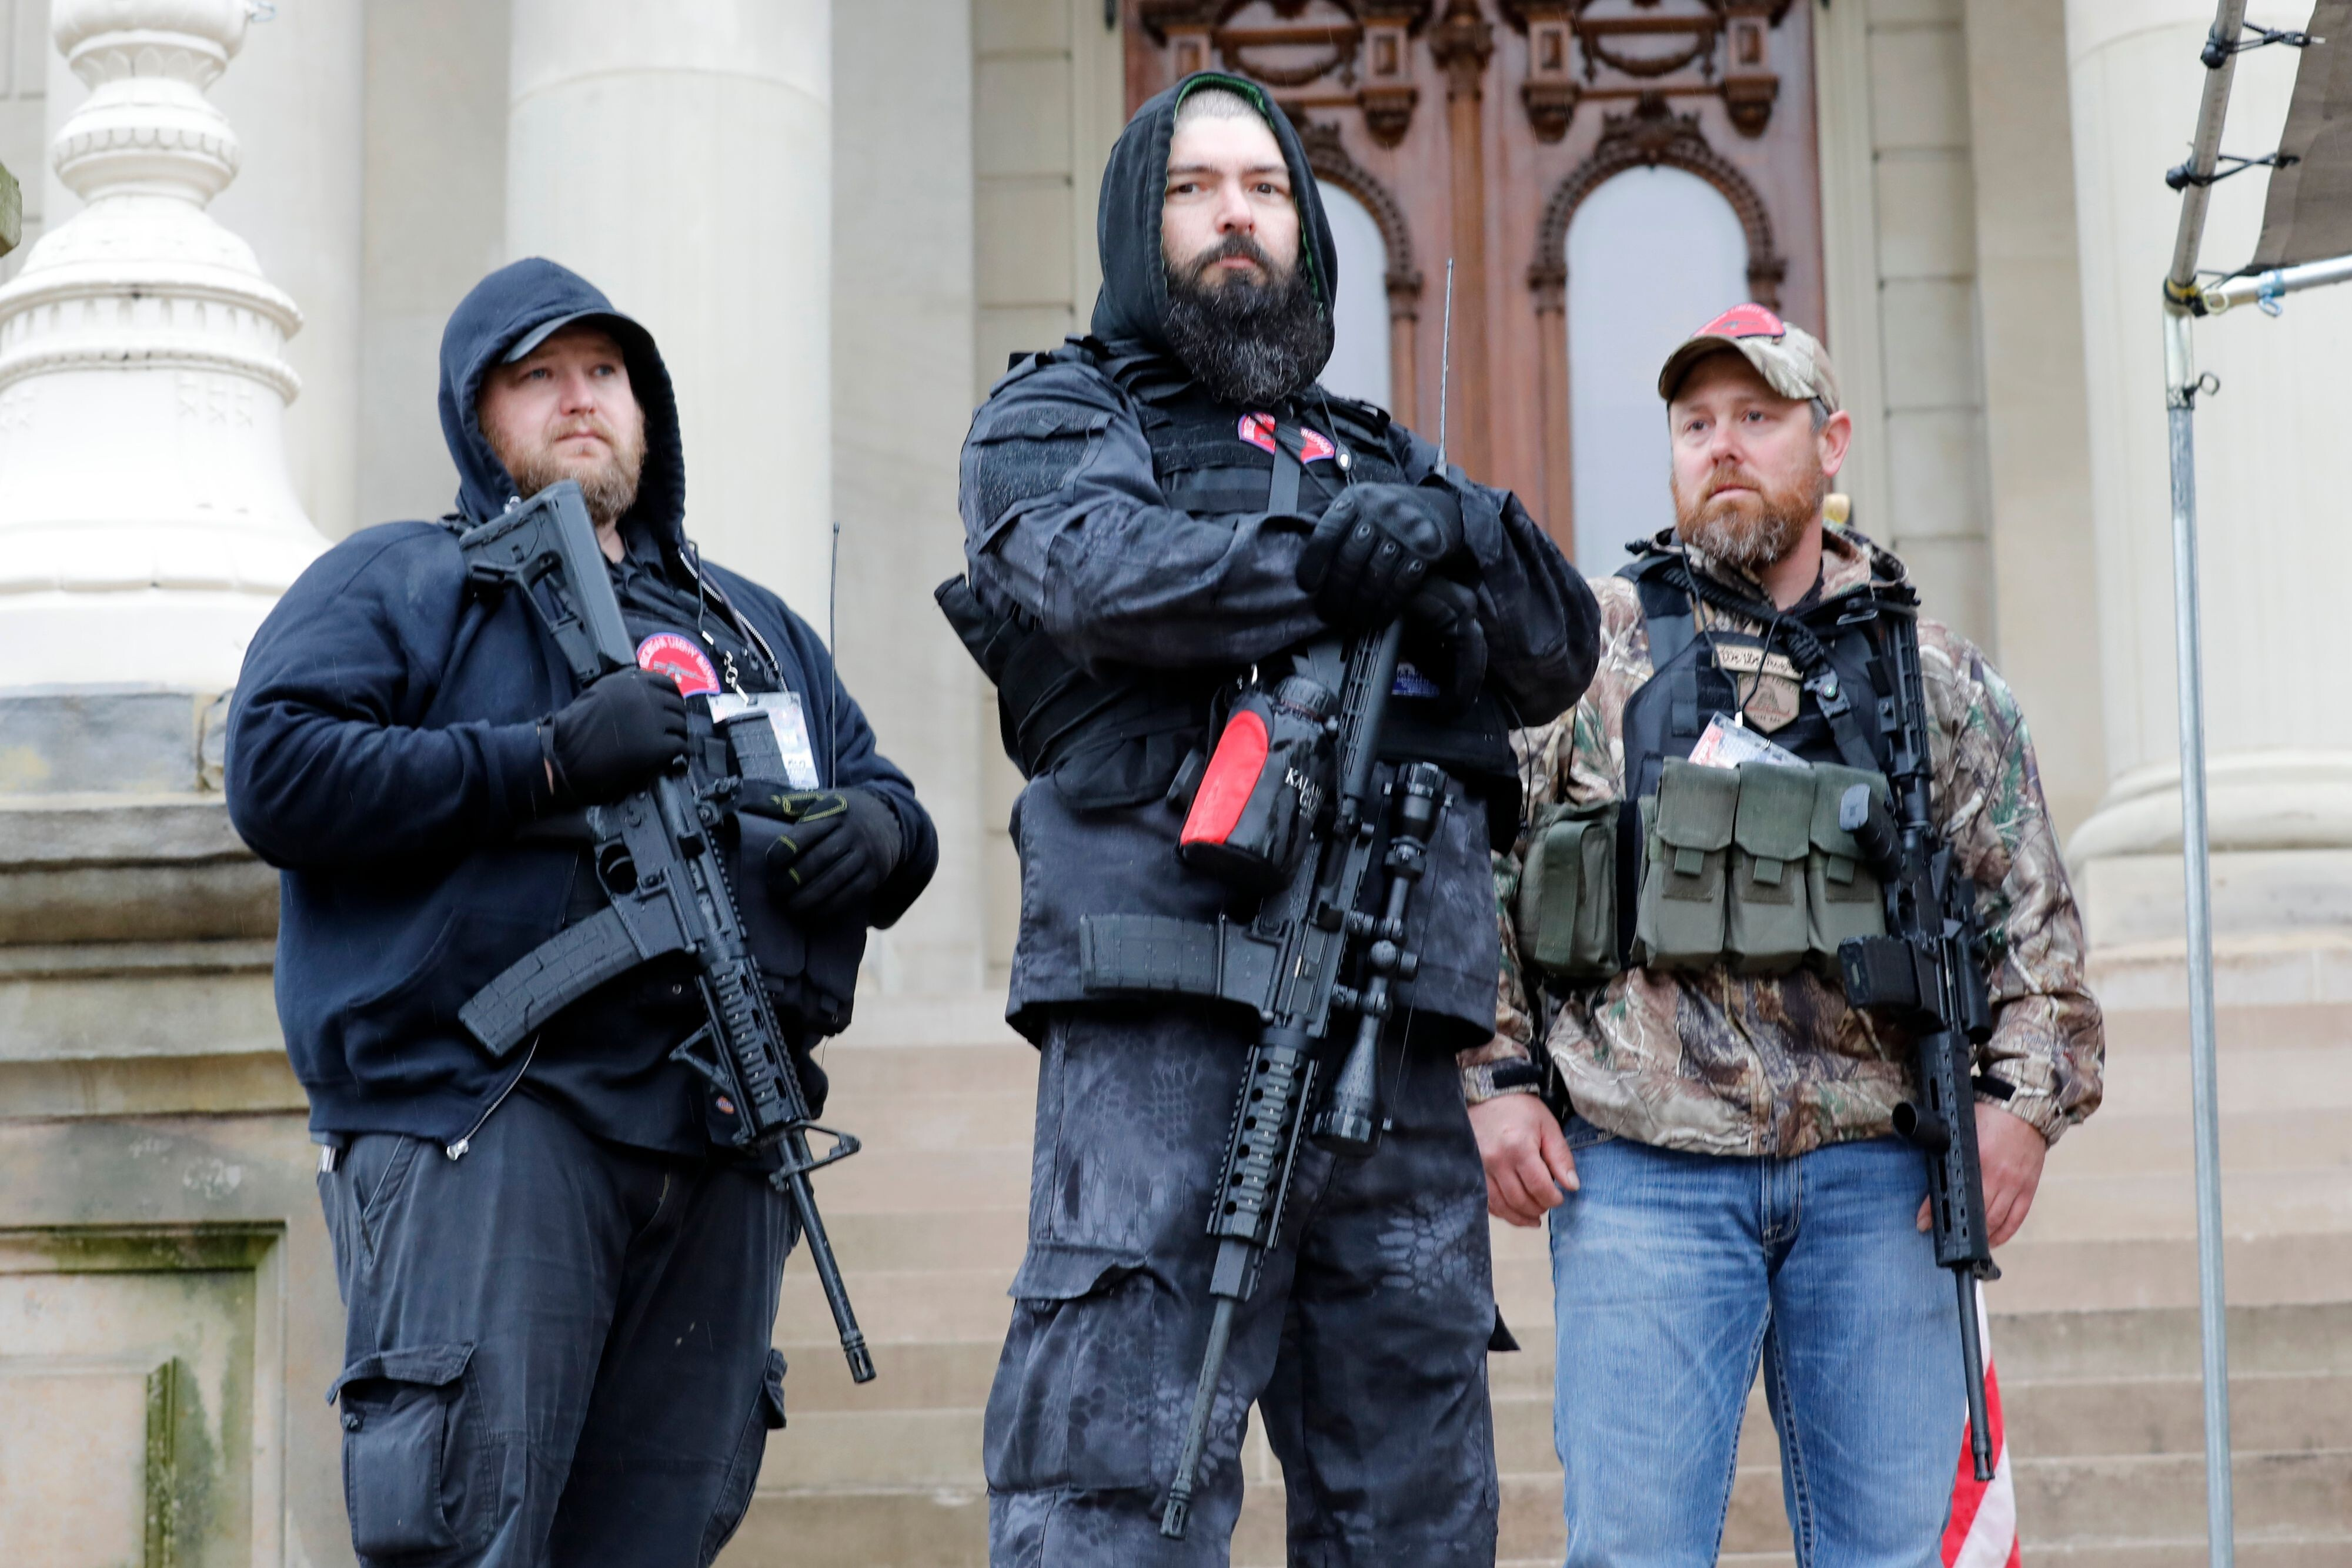 Armed militia at US virus protests a constitutional right, supporters say.  Critics say they intimidate | South China Morning Post